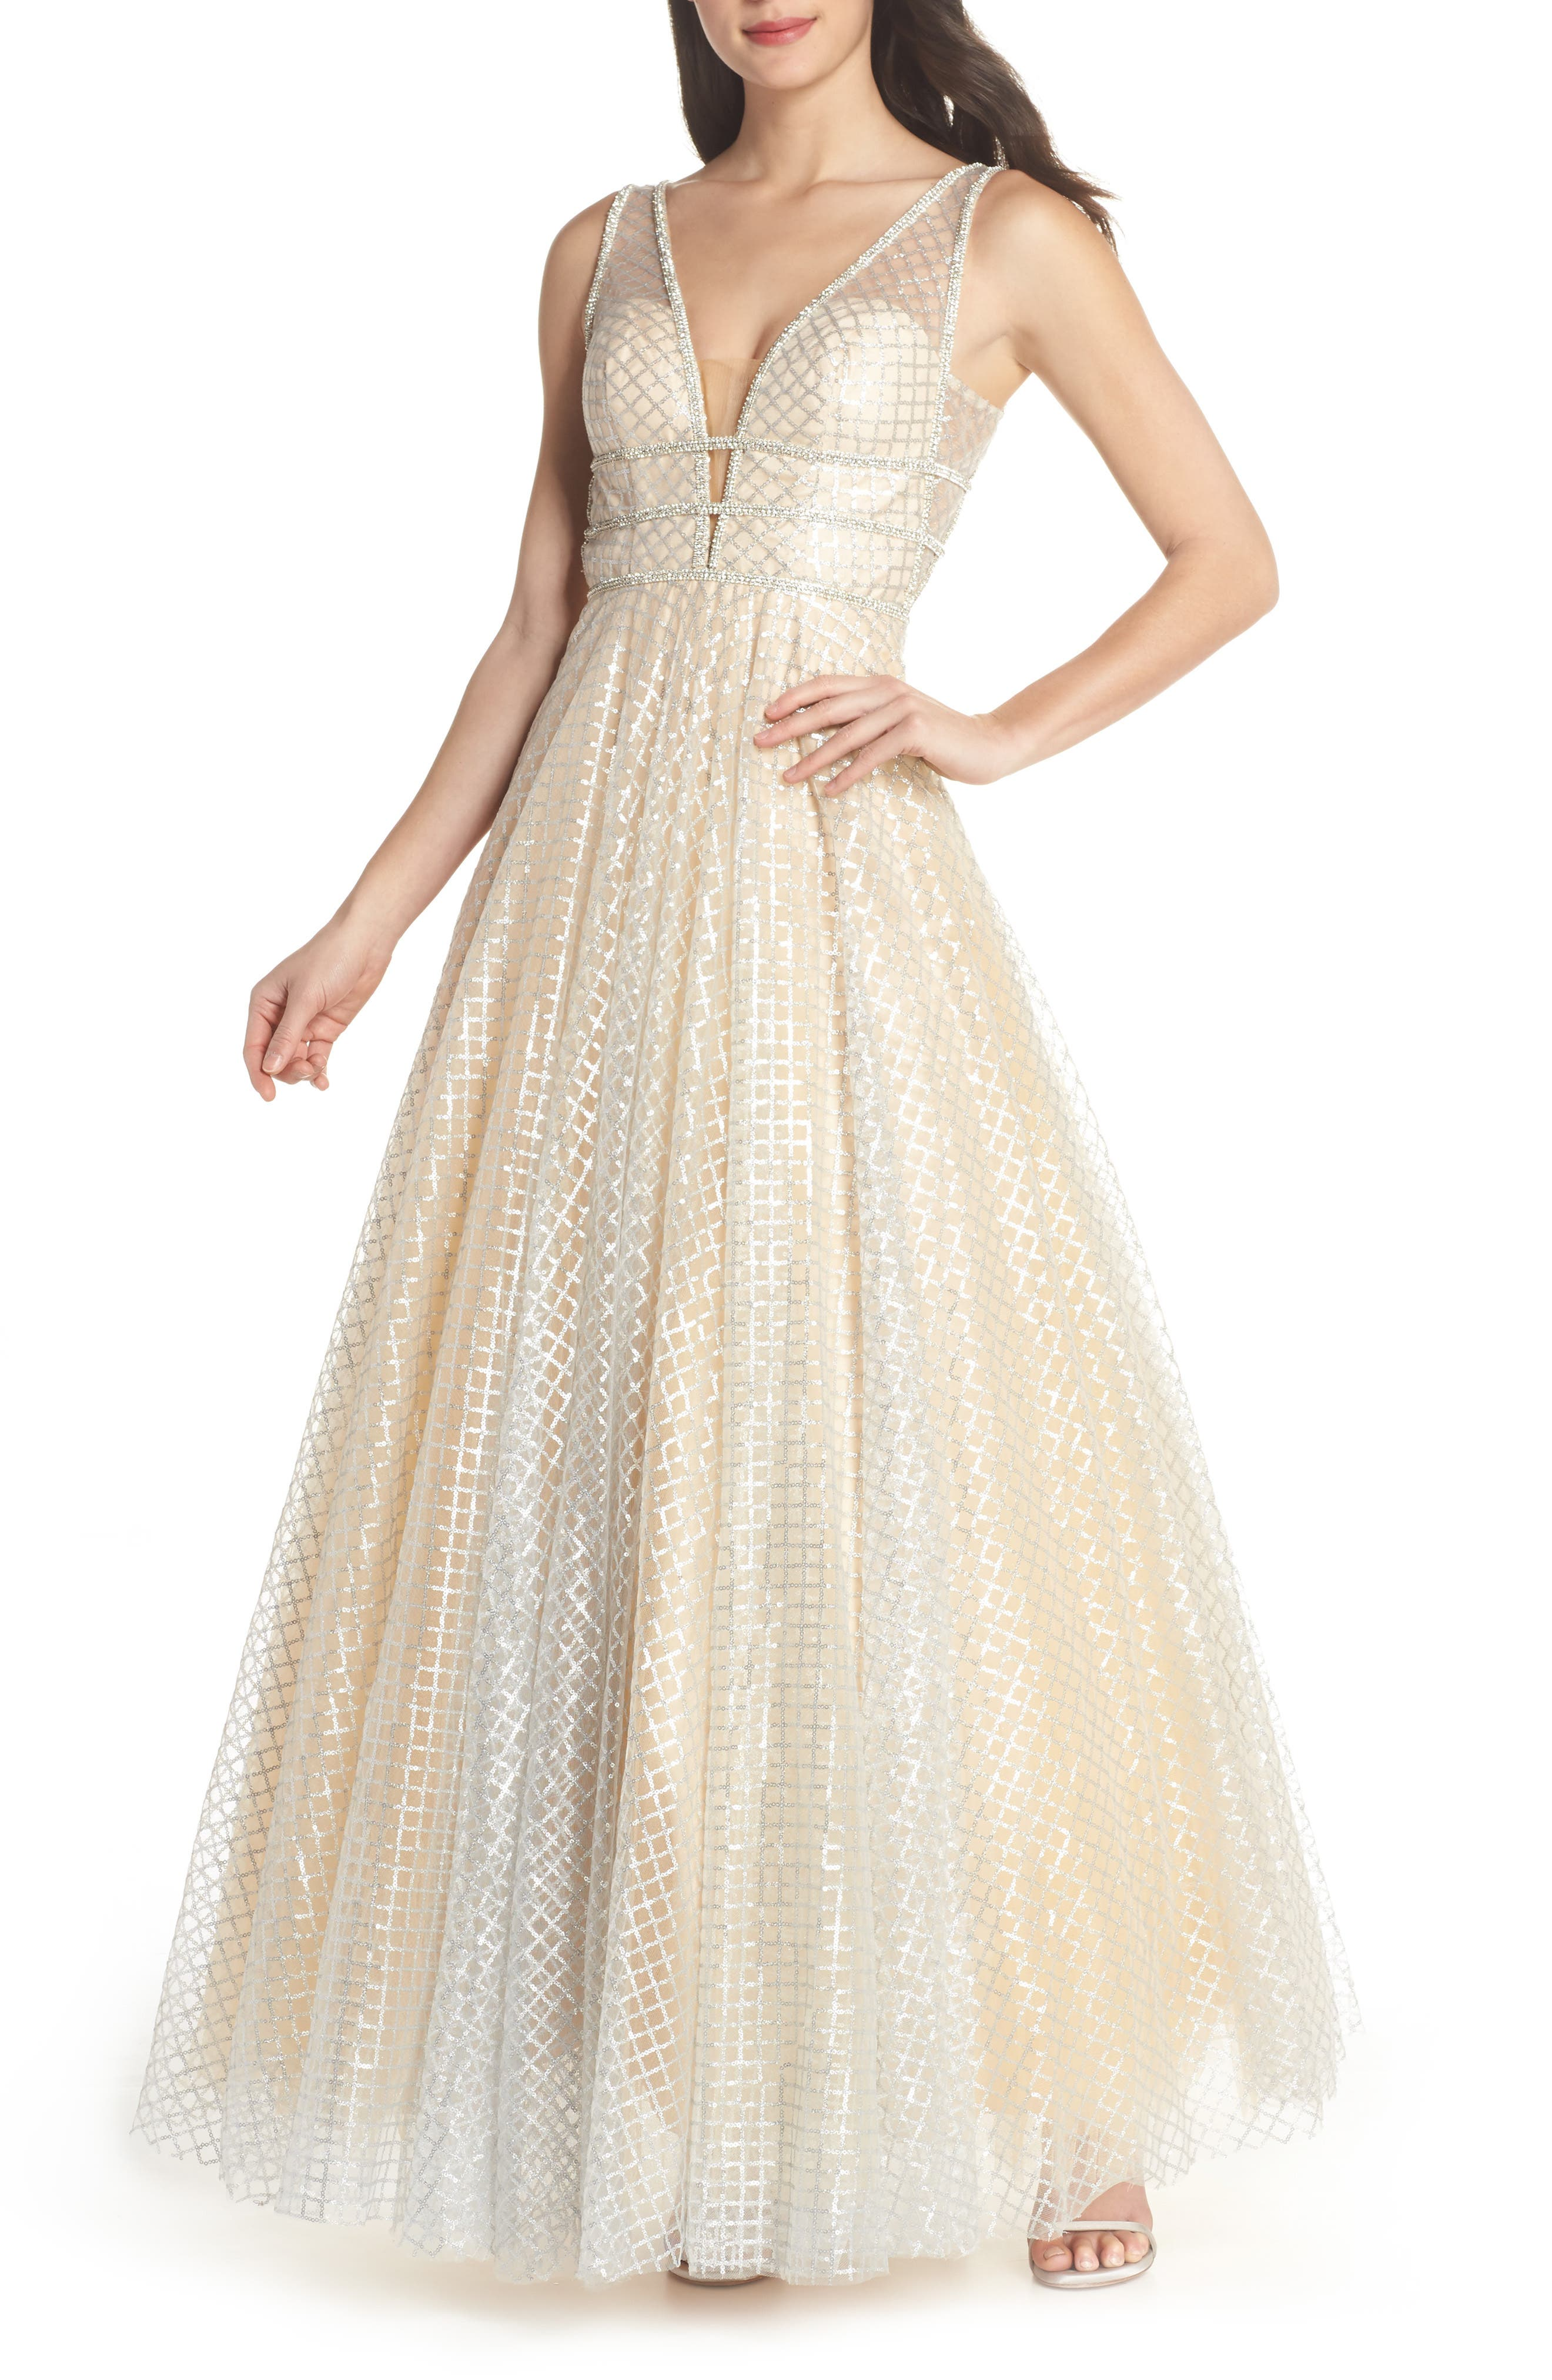 MAC DUGGAL, Sequin Illusion Neck Gown, Main thumbnail 1, color, NUDE/ SILVER